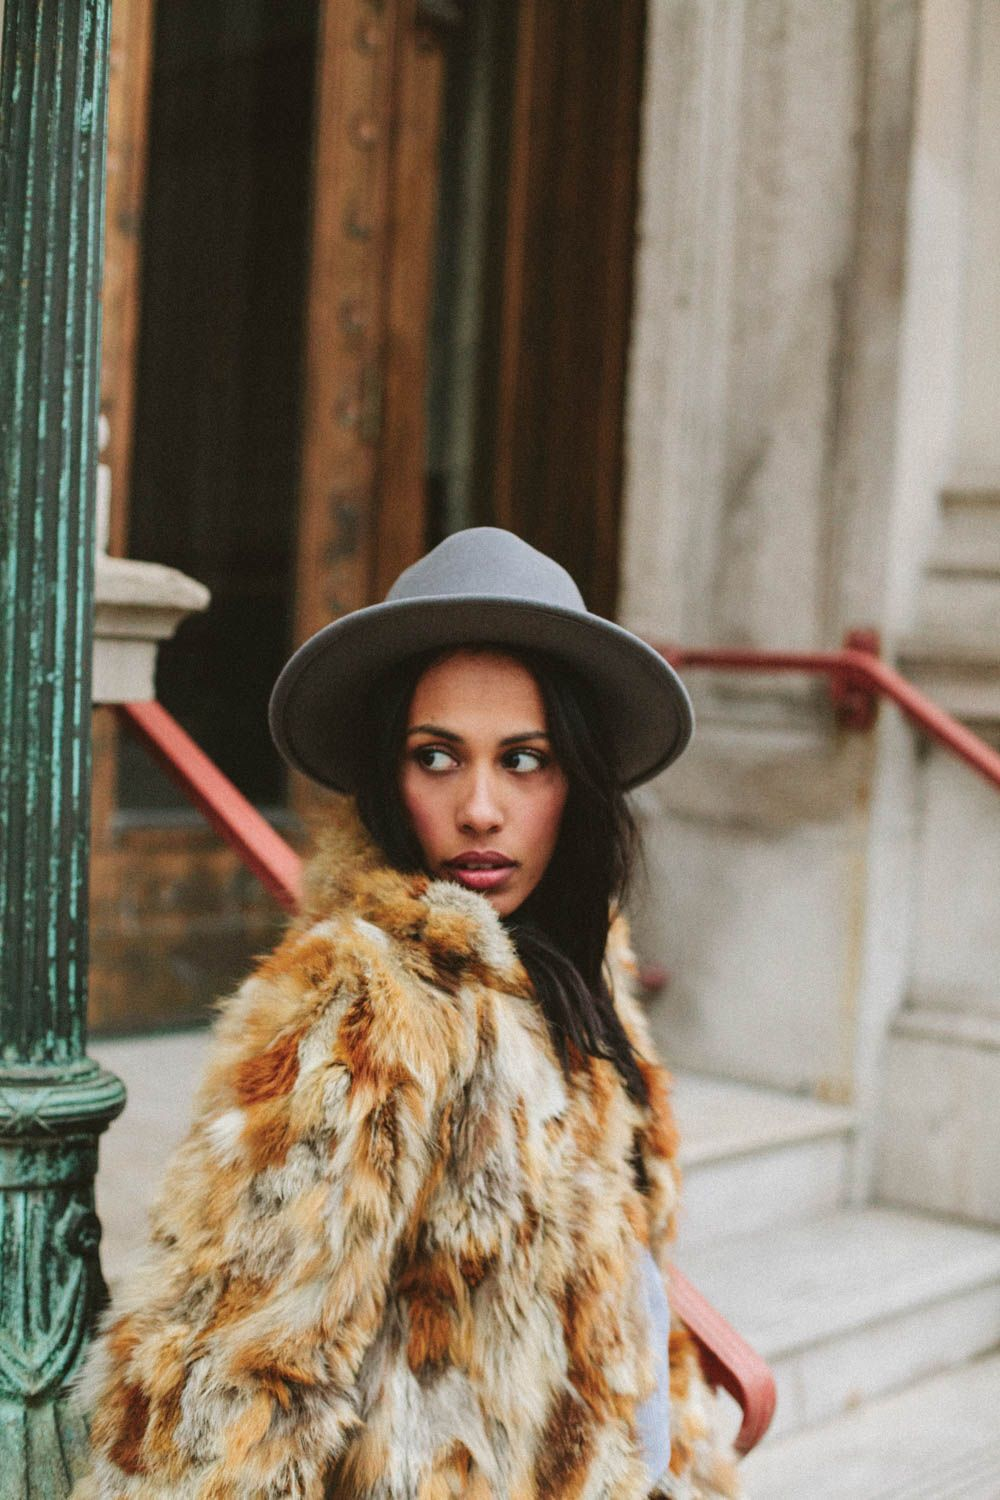 Fur + hat = cozy goodness.